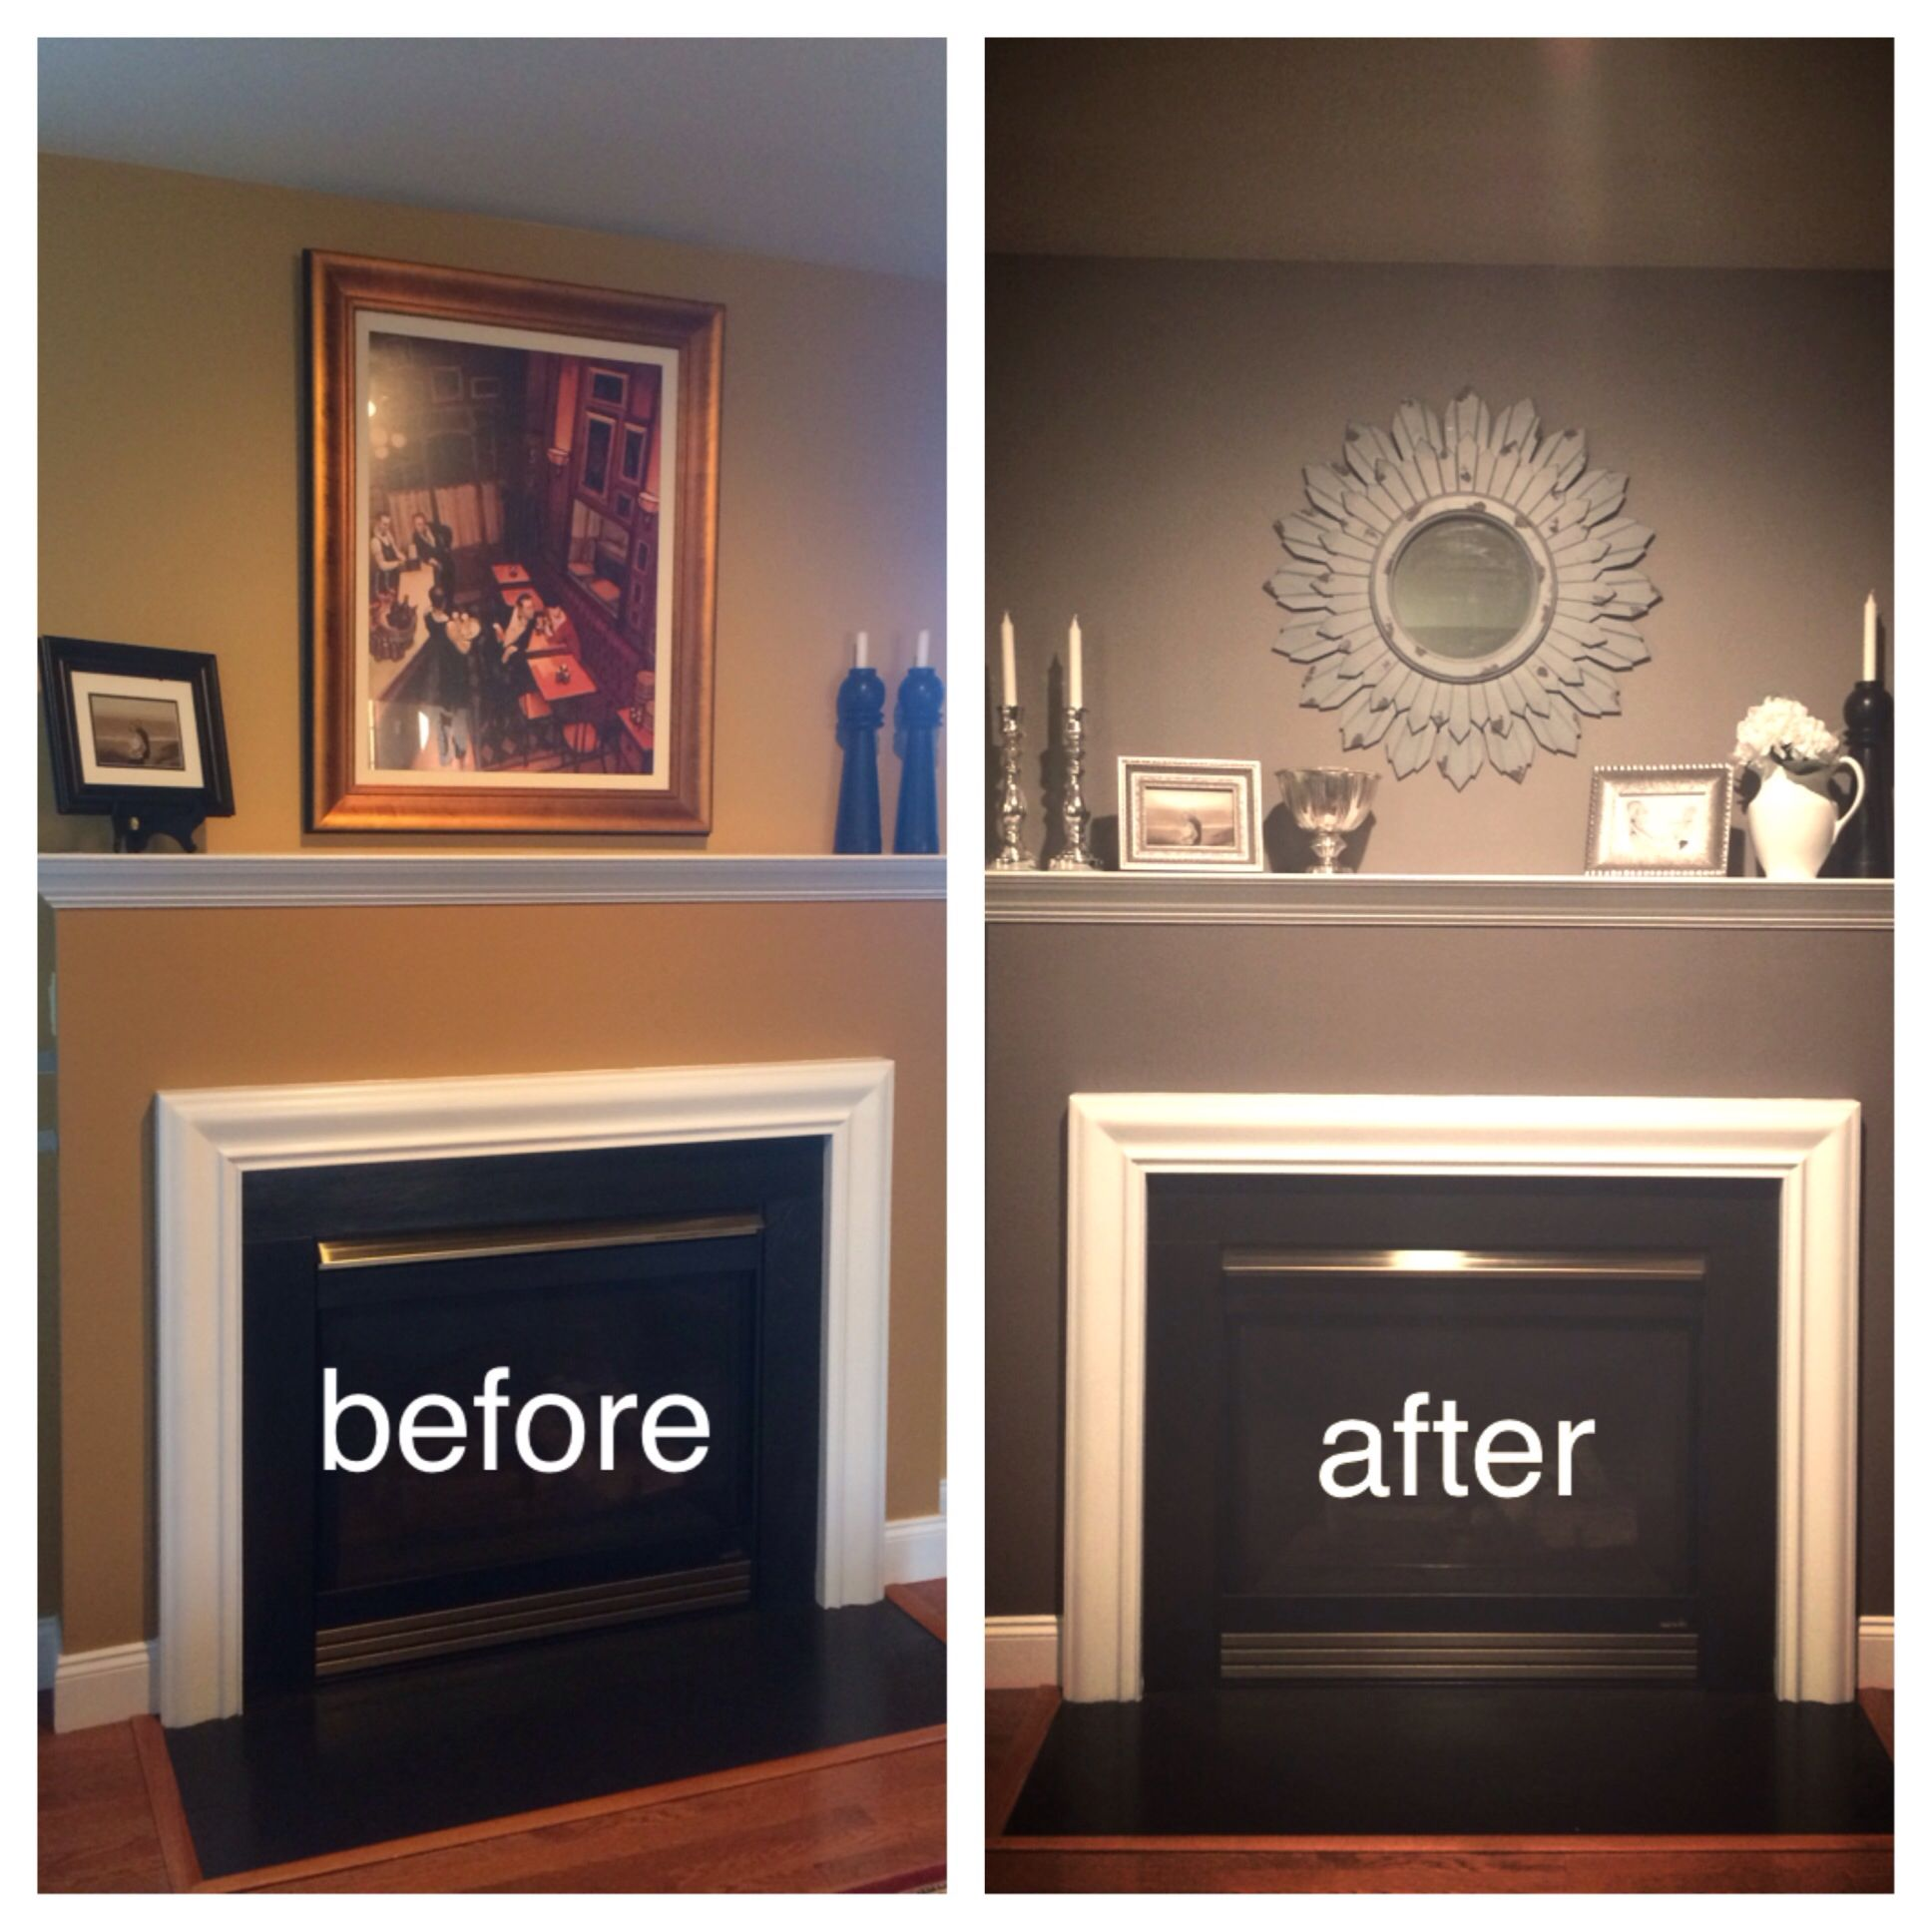 Sherwin Williams Stock Quote Mantle Facelift Mercury Glass Candlesticks Starburst Frame